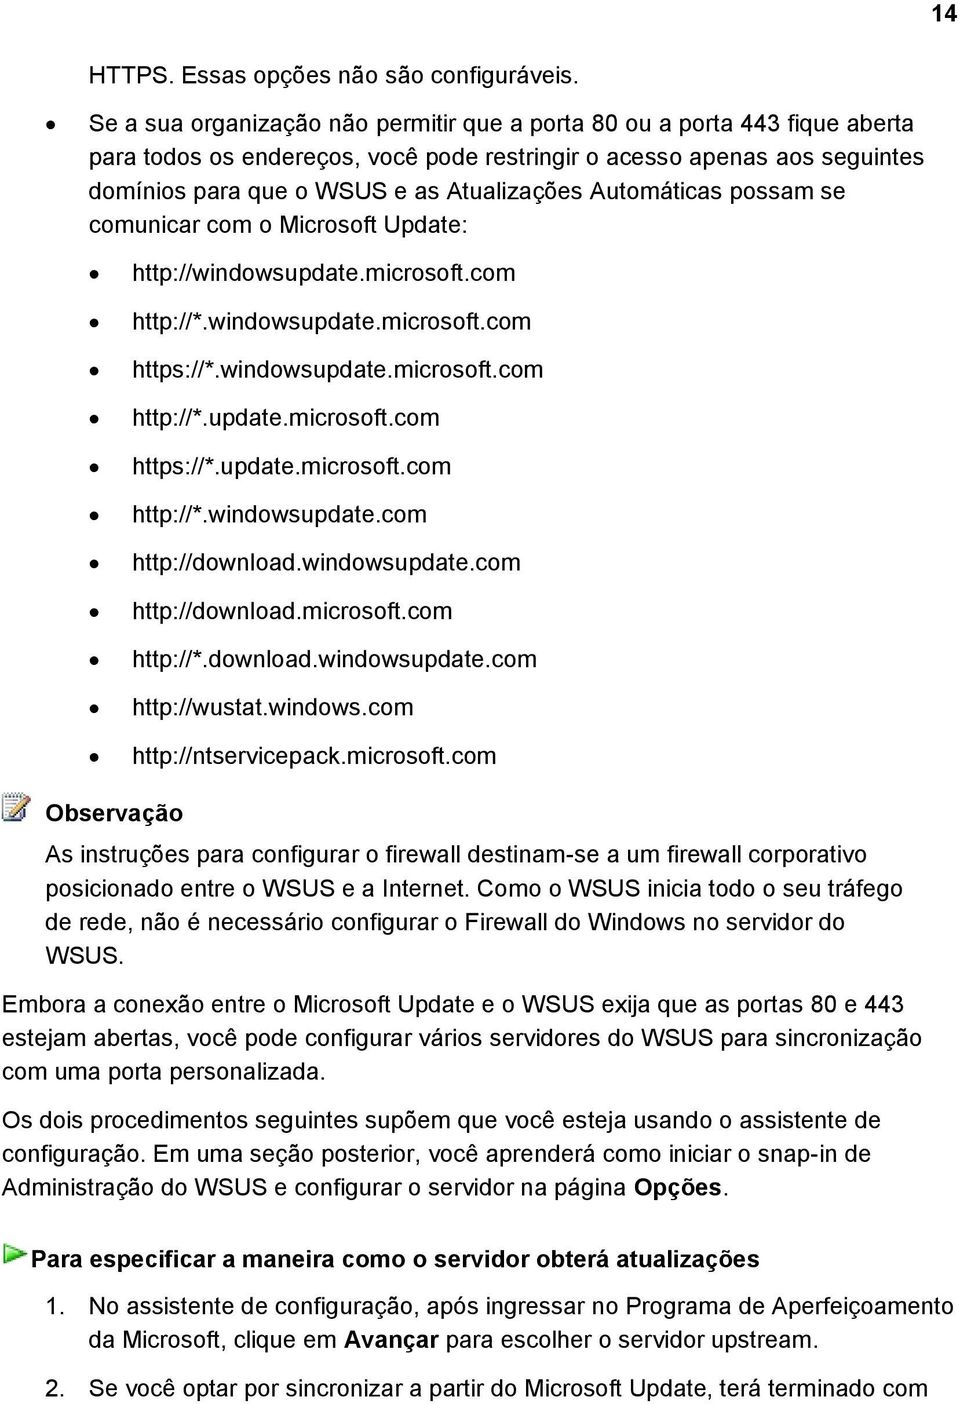 Automáticas possam se comunicar com o Microsoft Update: http://windowsupdate.microsoft.com http://*.windowsupdate.microsoft.com https://*.windowsupdate.microsoft.com http://*.update.microsoft.com https://*.update.microsoft.com http://*.windowsupdate.com http://download.